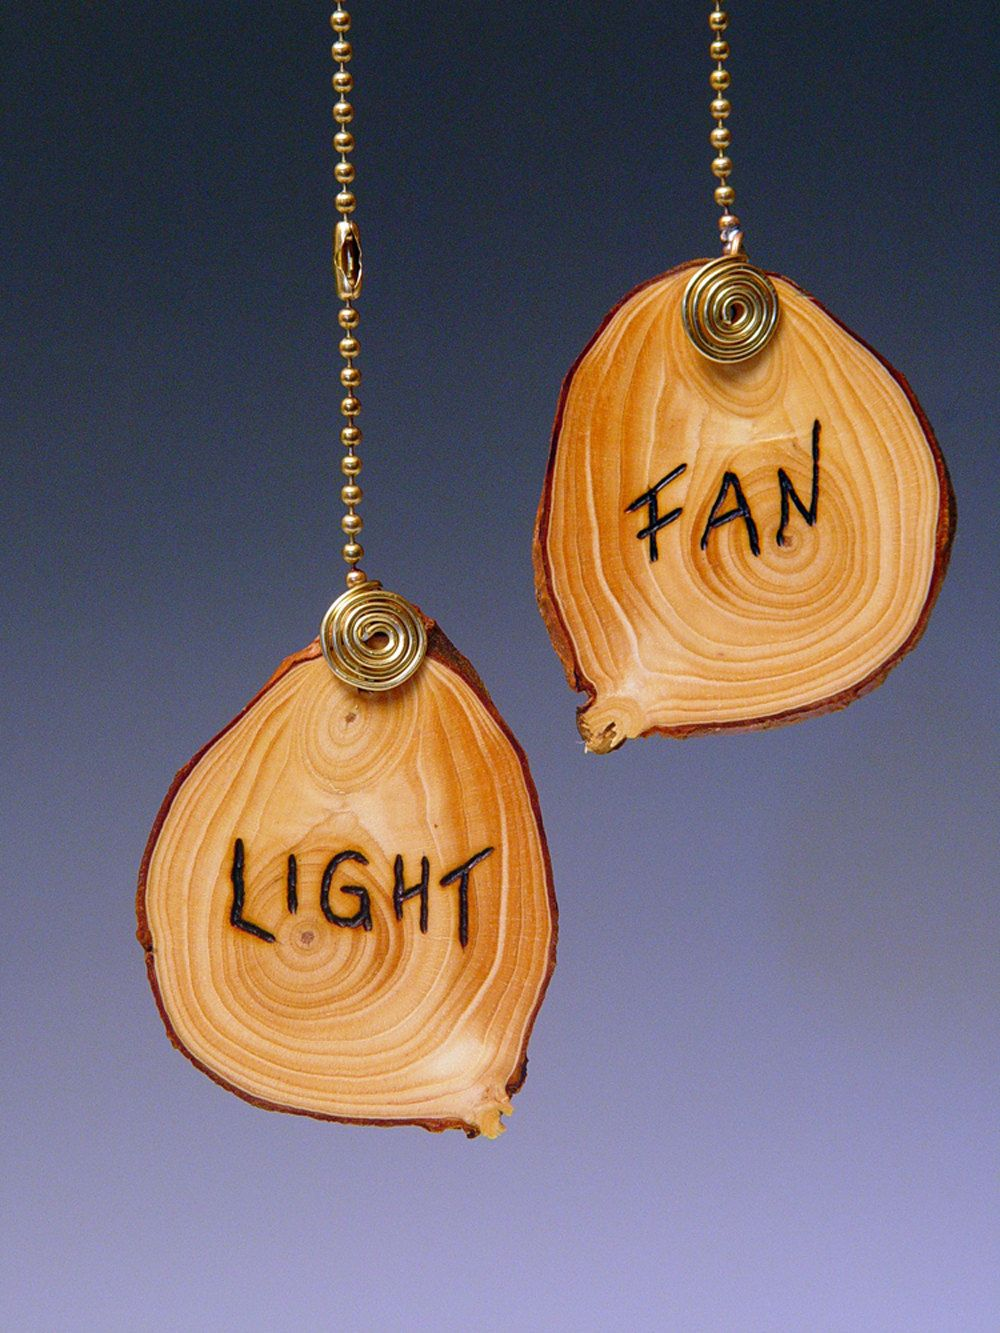 Fan Pull Chain Ornaments Pleasing Ceiling Fan Pull Chain Lamp Pull Wooden Disc Etched With Brass Design Decoration